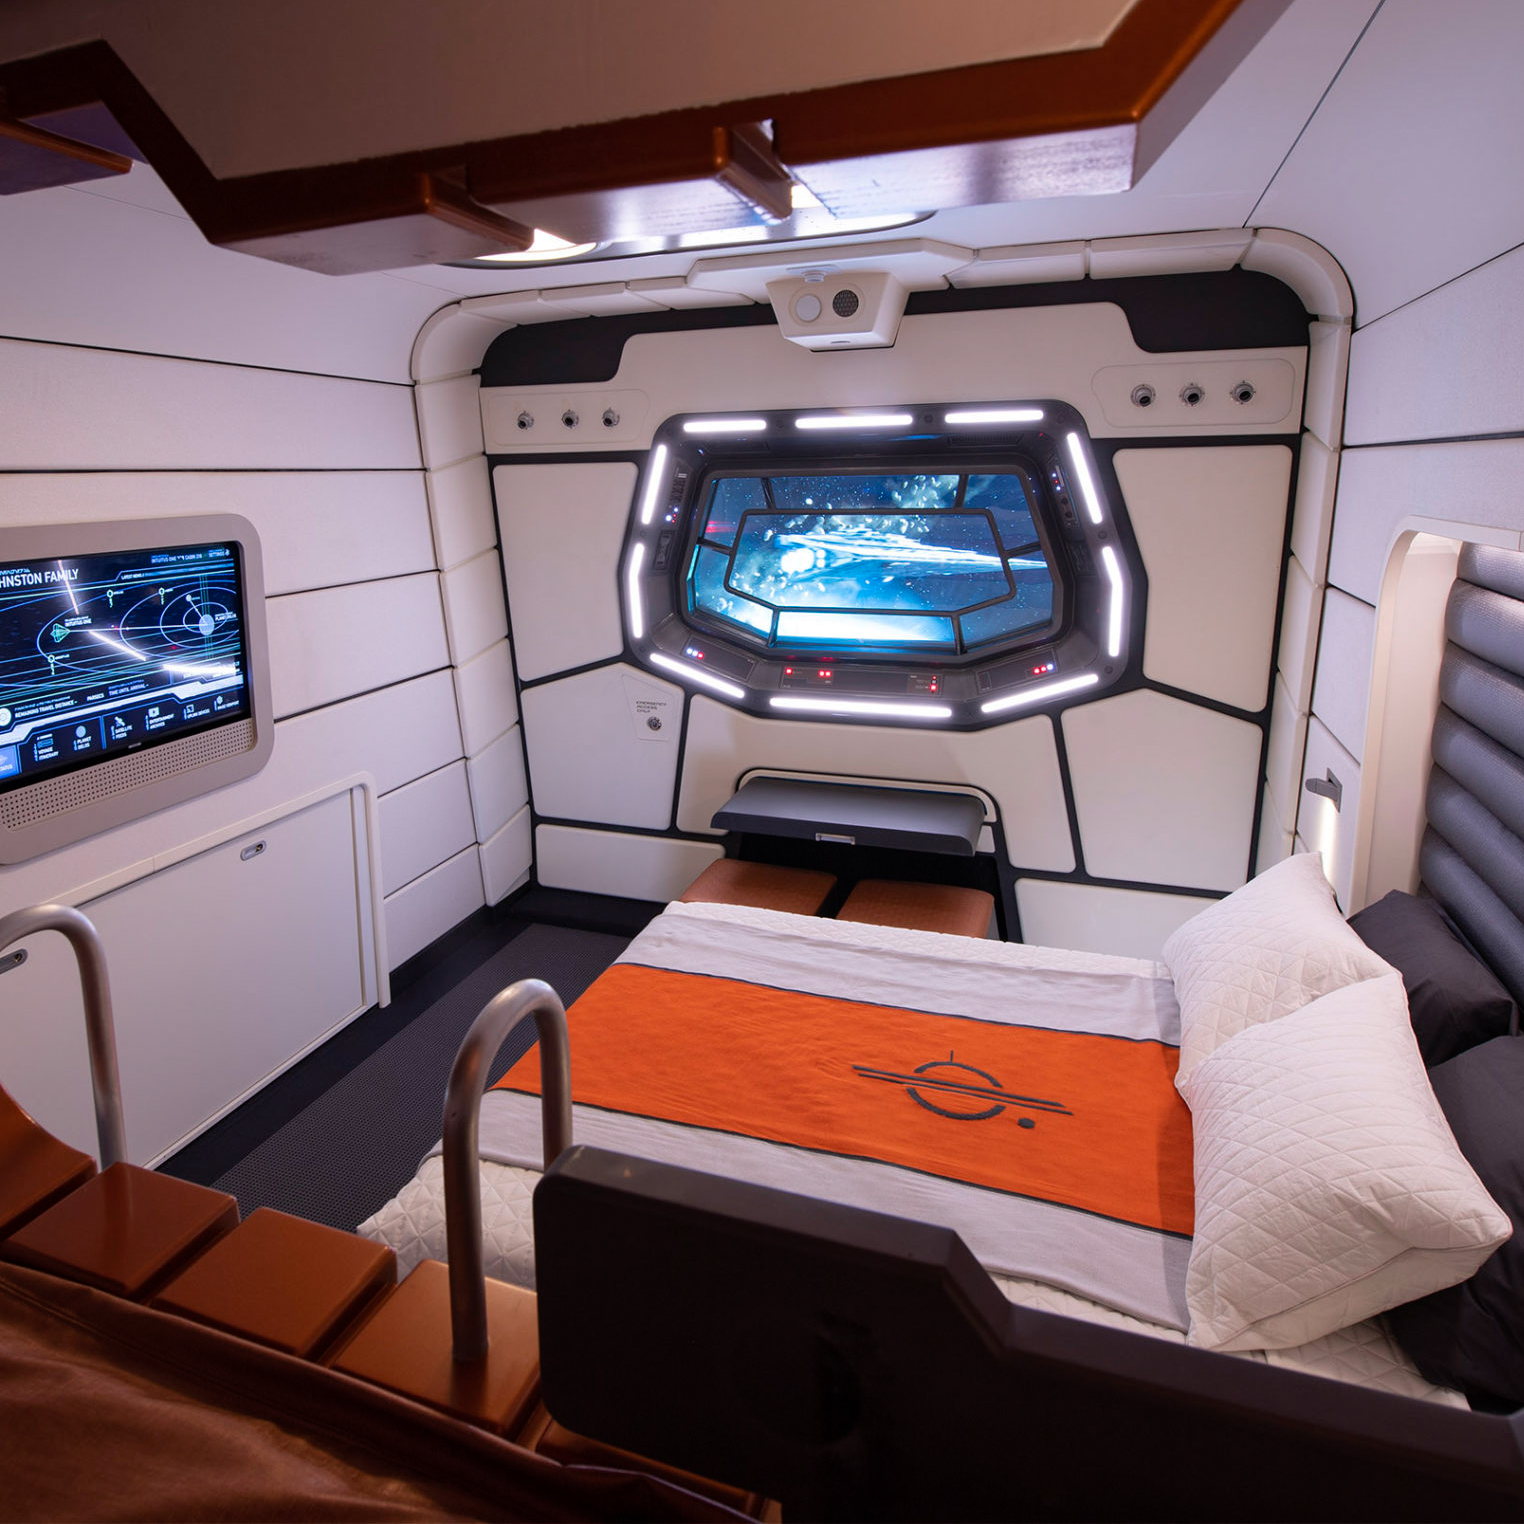 A mock-up of a cabin at Disney's Star Wars: Galactic Starcruiser.